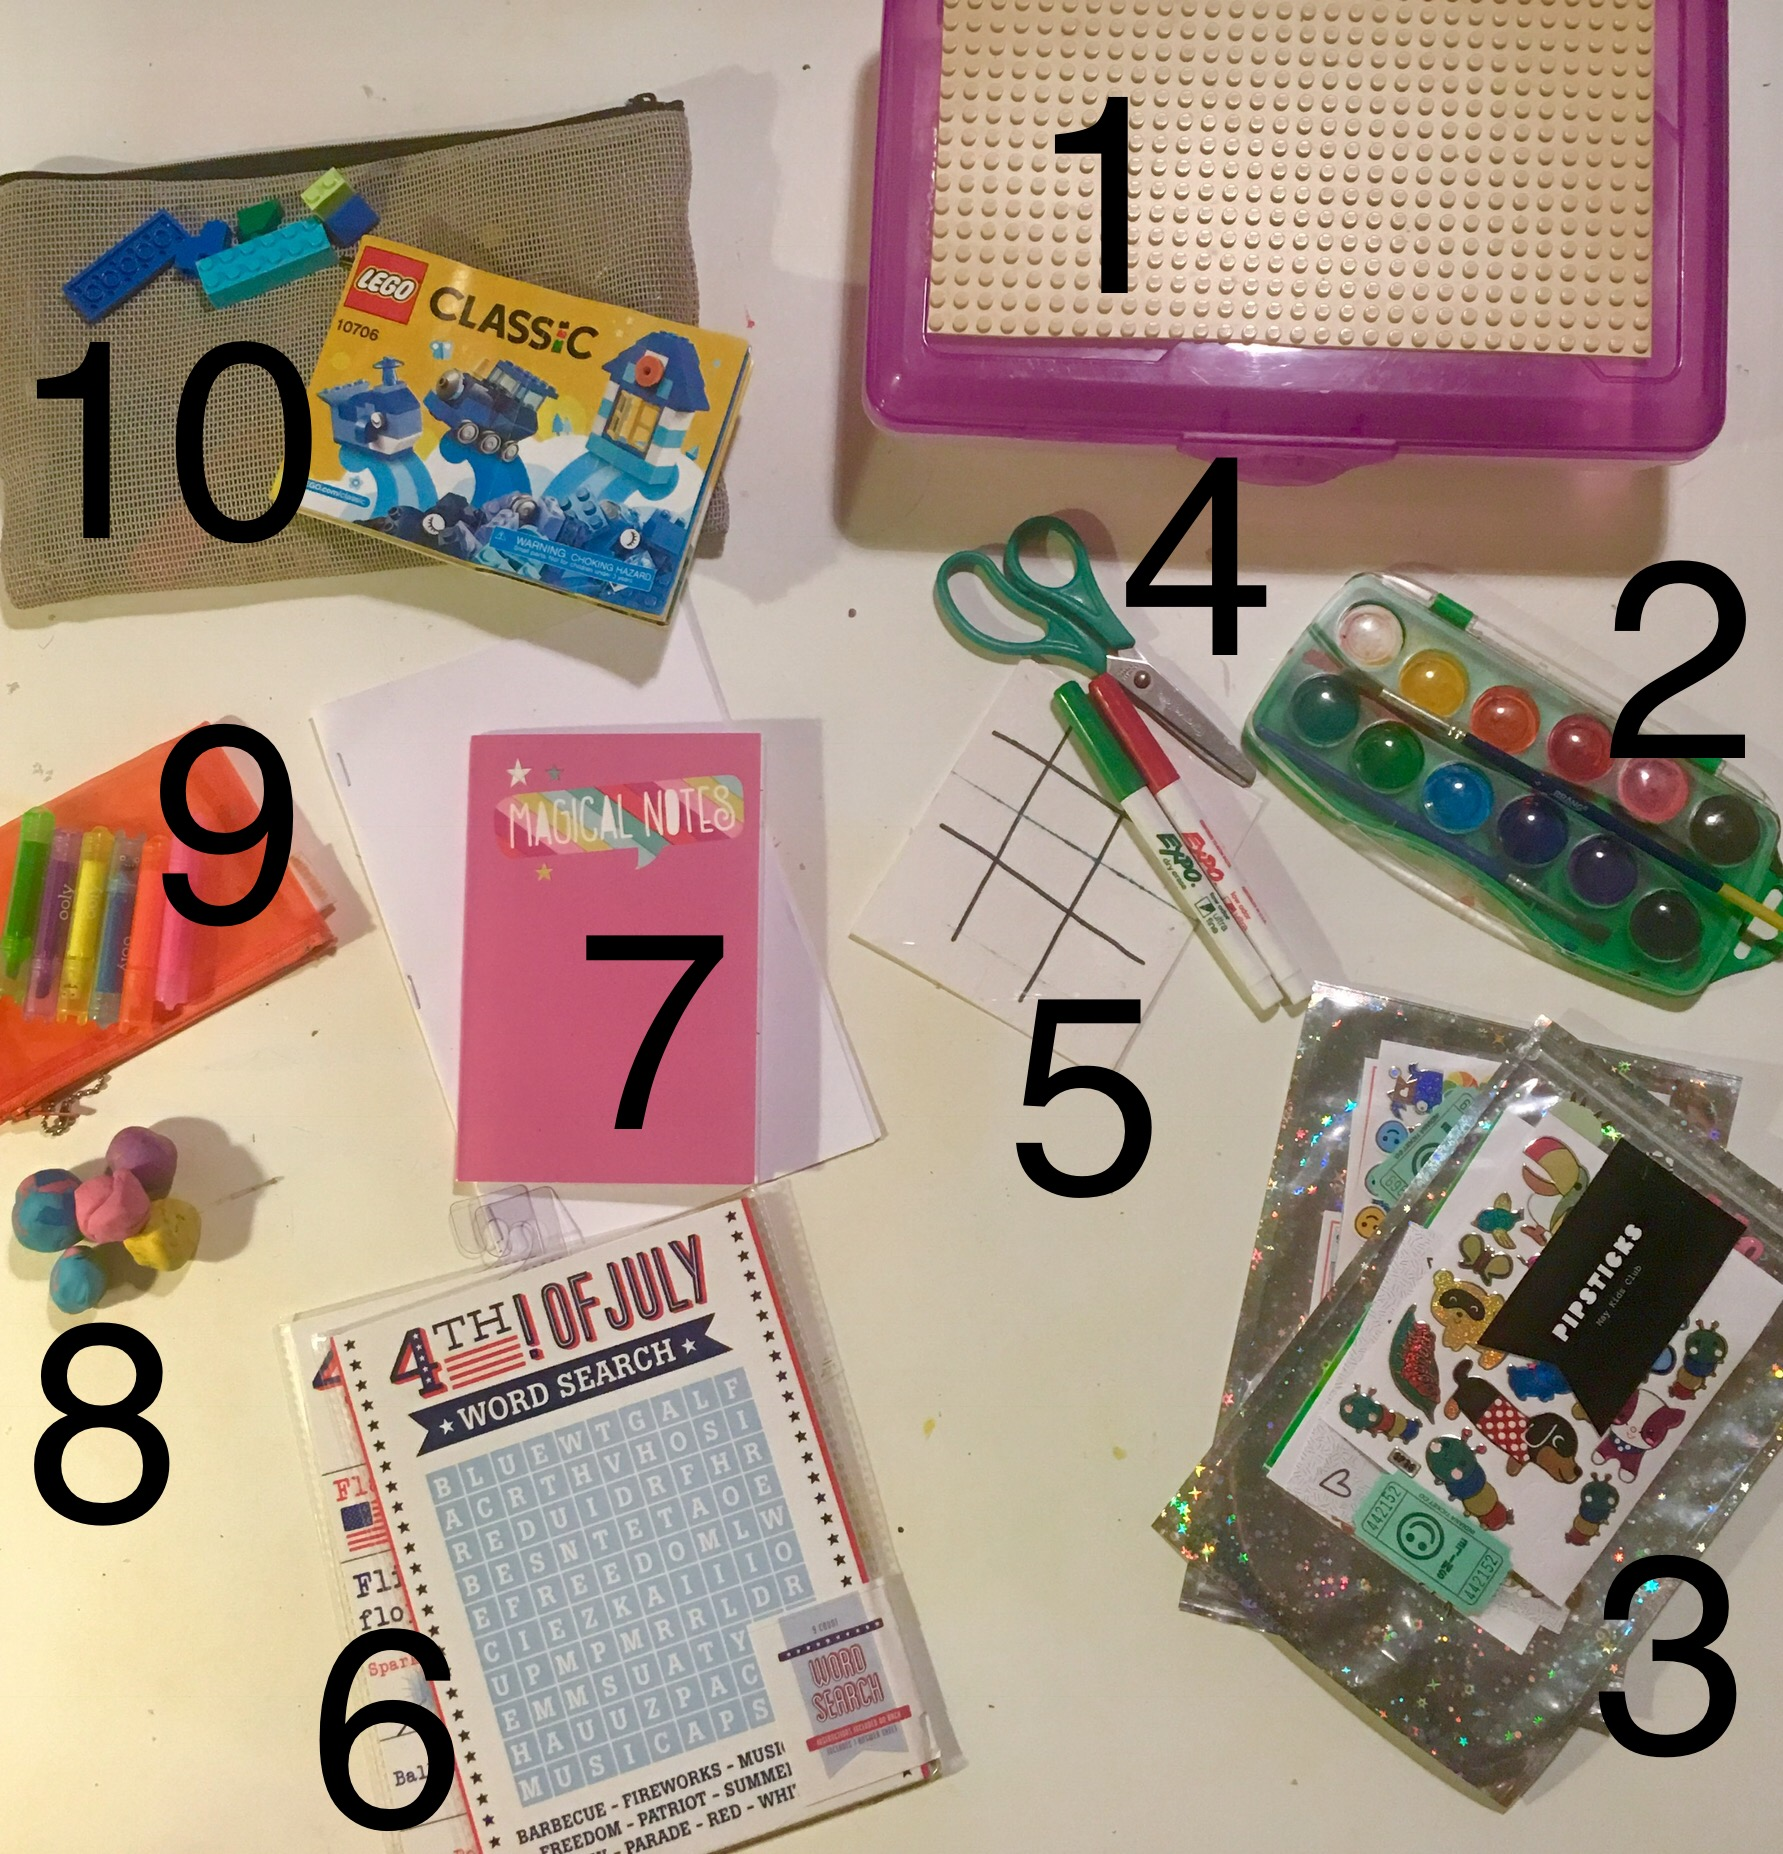 """1.   Plastic snap-lid oversized pencil box   with a piece of   LEGO """"land""""  cut to size and hot glued to top.  2.   Kids pan watercolor set   and brush (all you need is paper, a water cup to wash your brush, and a napkin to dry your brush  3. Stickers! We   subscribe to a monthly sticker club   and it's AWESOME!  4.   Scissors    5.   Dry erase markers   and a homemade double-sided tic tac toe/what we call the """"making squares"""" game...does anyone know the official name?...on a heavy piece of paper wrapped in clear packing tape.  6. Games from the dollar bin...word search, car bingo...  7. A notepad, copy paper folded and stapled into a blank sketchbook, watercolor scrap paper  8.   Modeling clay    9.   Markers   and a soft   carrying pouch    10.   LEGO's   and a   carrying pouch    Optional:    Figurines  , washi tape, pencils, puzzles, a   Spirograph  ...the possibilities are endless...space dependent ;-)"""